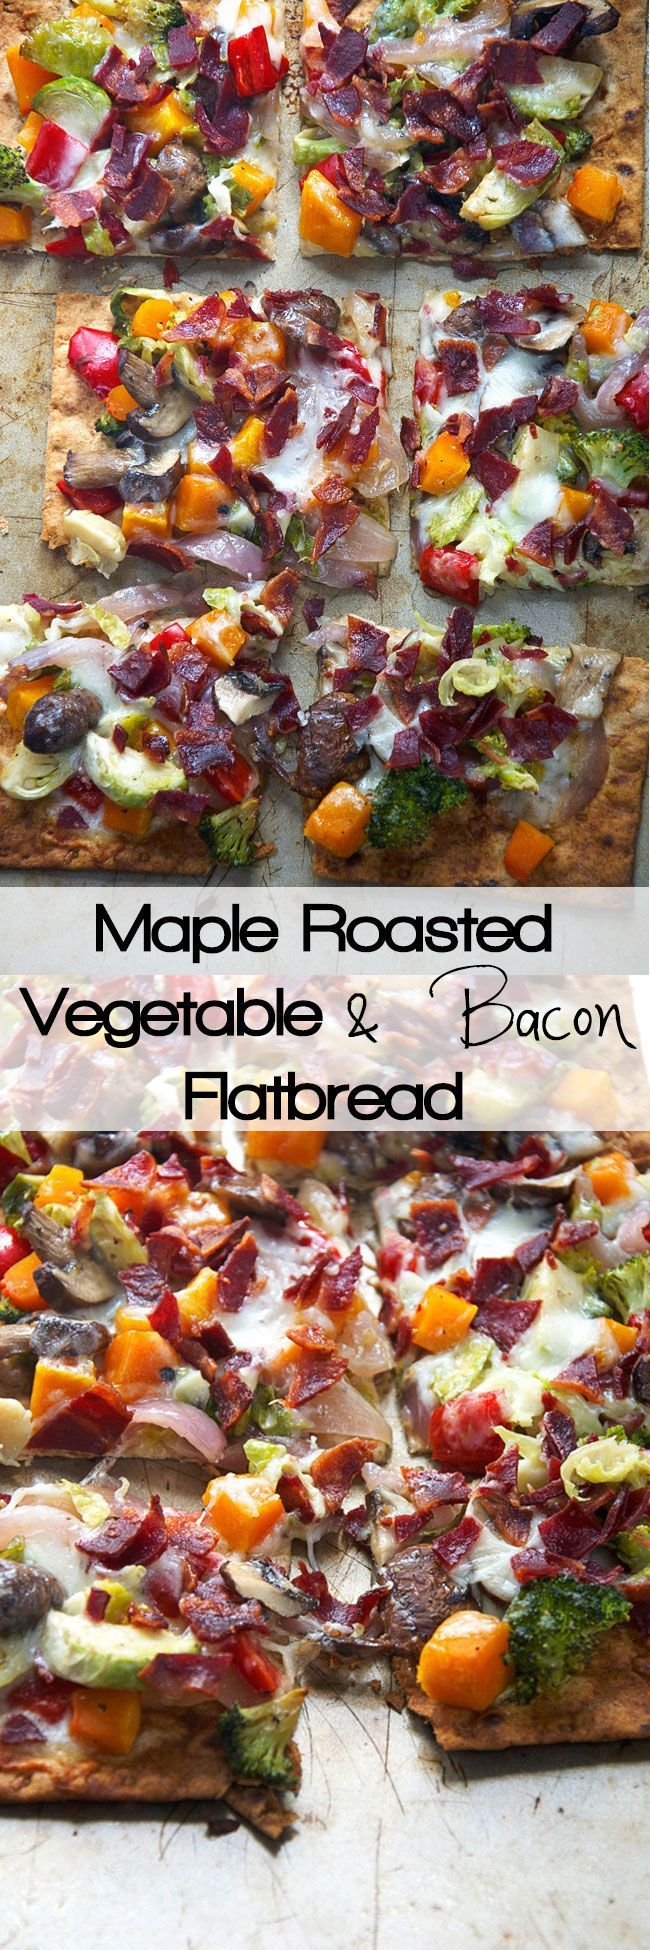 Thin and crispy lavash is used as the base for this flatbread, and topped with autumn, maple roasted veggies and topped with bacon and creamy fontina for flatbread that will please anyone!